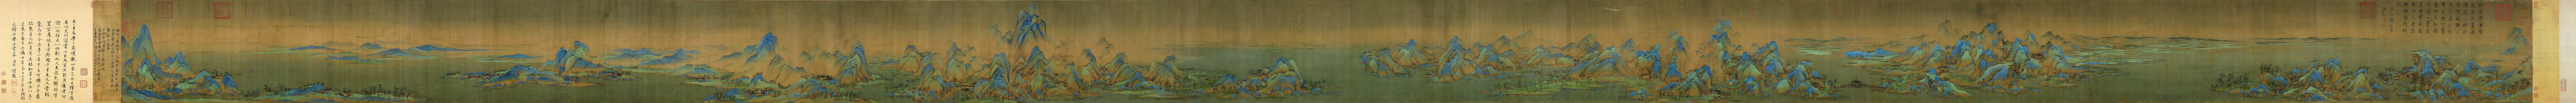 Panorama of A Thousand Li of Rivers and Mountains, 12th century painting by Chinese artist Wang Ximeng; 37.5% resolution. Note: scroll starts from the right.